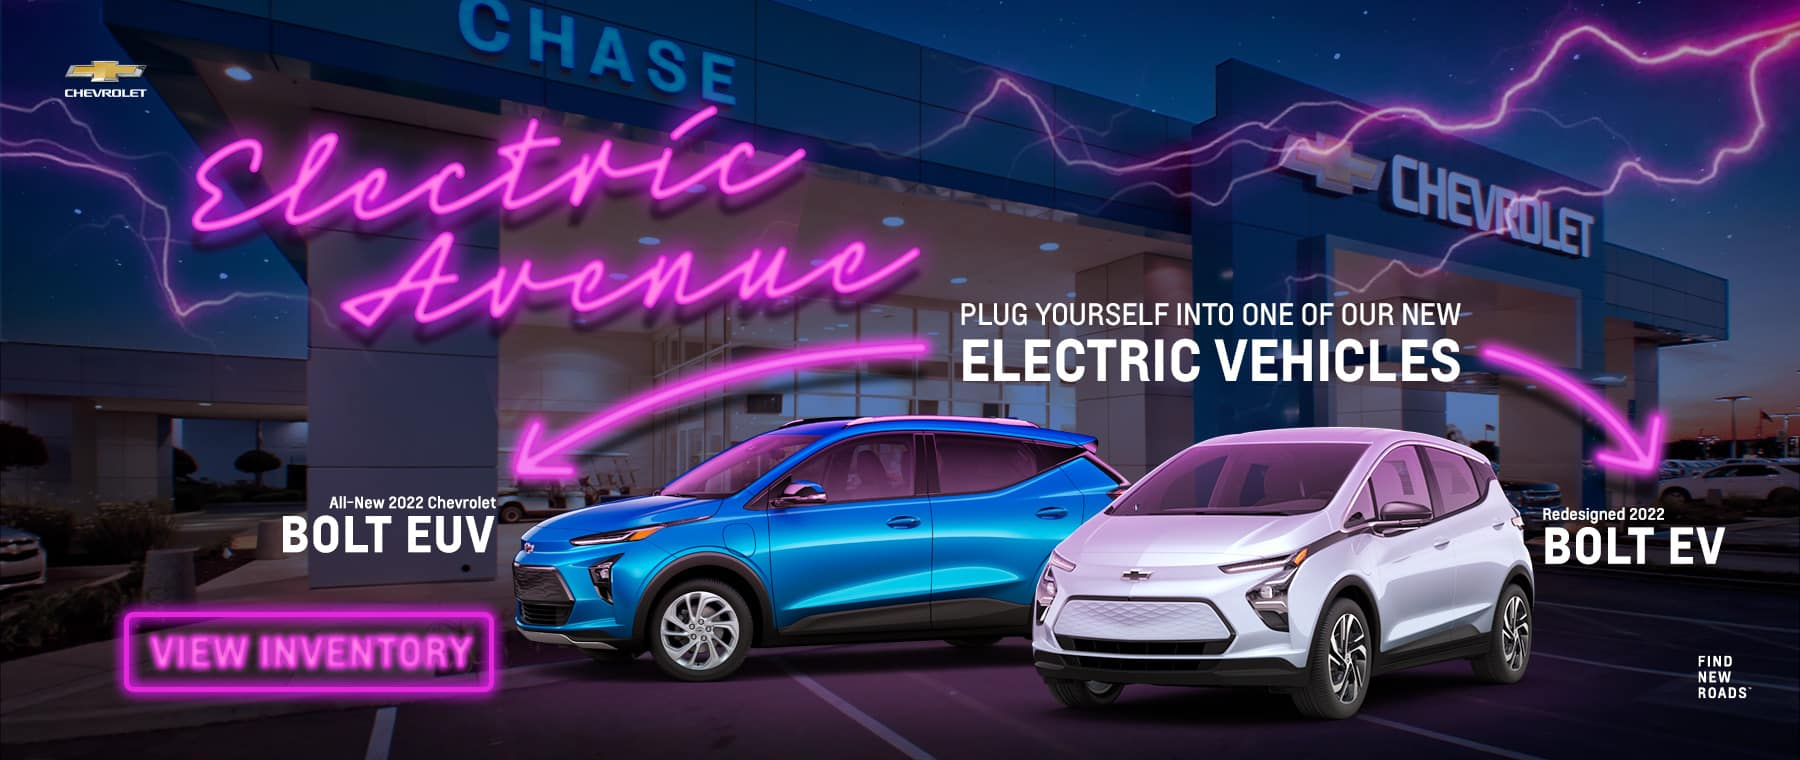 Electric Avenue - Plug Yourself Into One Of Our New Electric Vehicles - 2022 Bolt EUV / BOLT EV